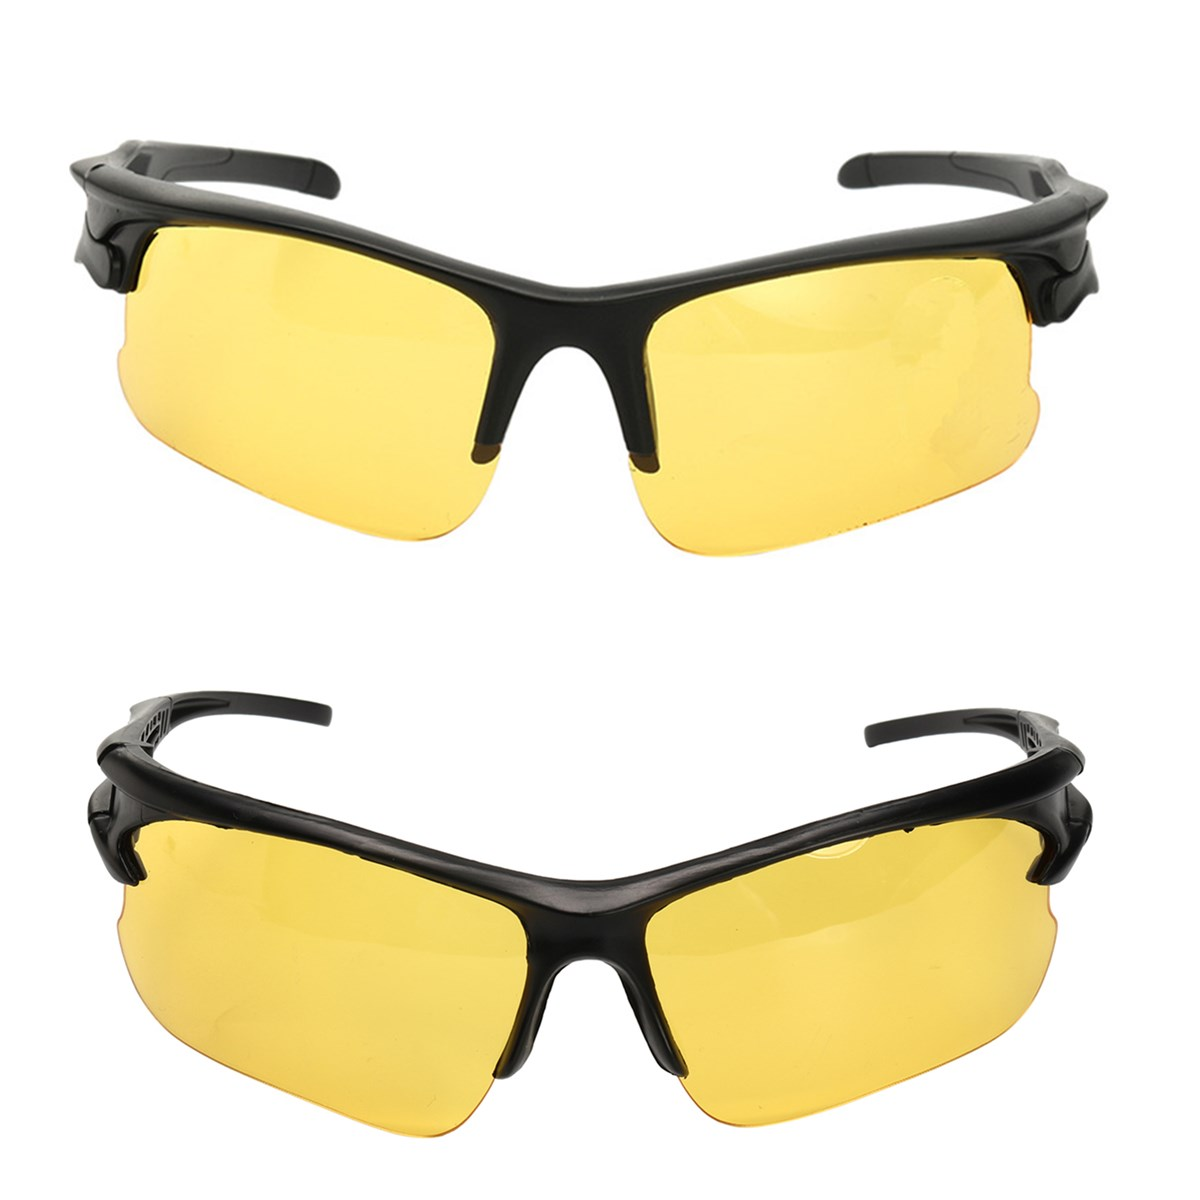 Anti Glare TAC Driving Yellow Lens Sunglasses Night Vision Polarized Glasses